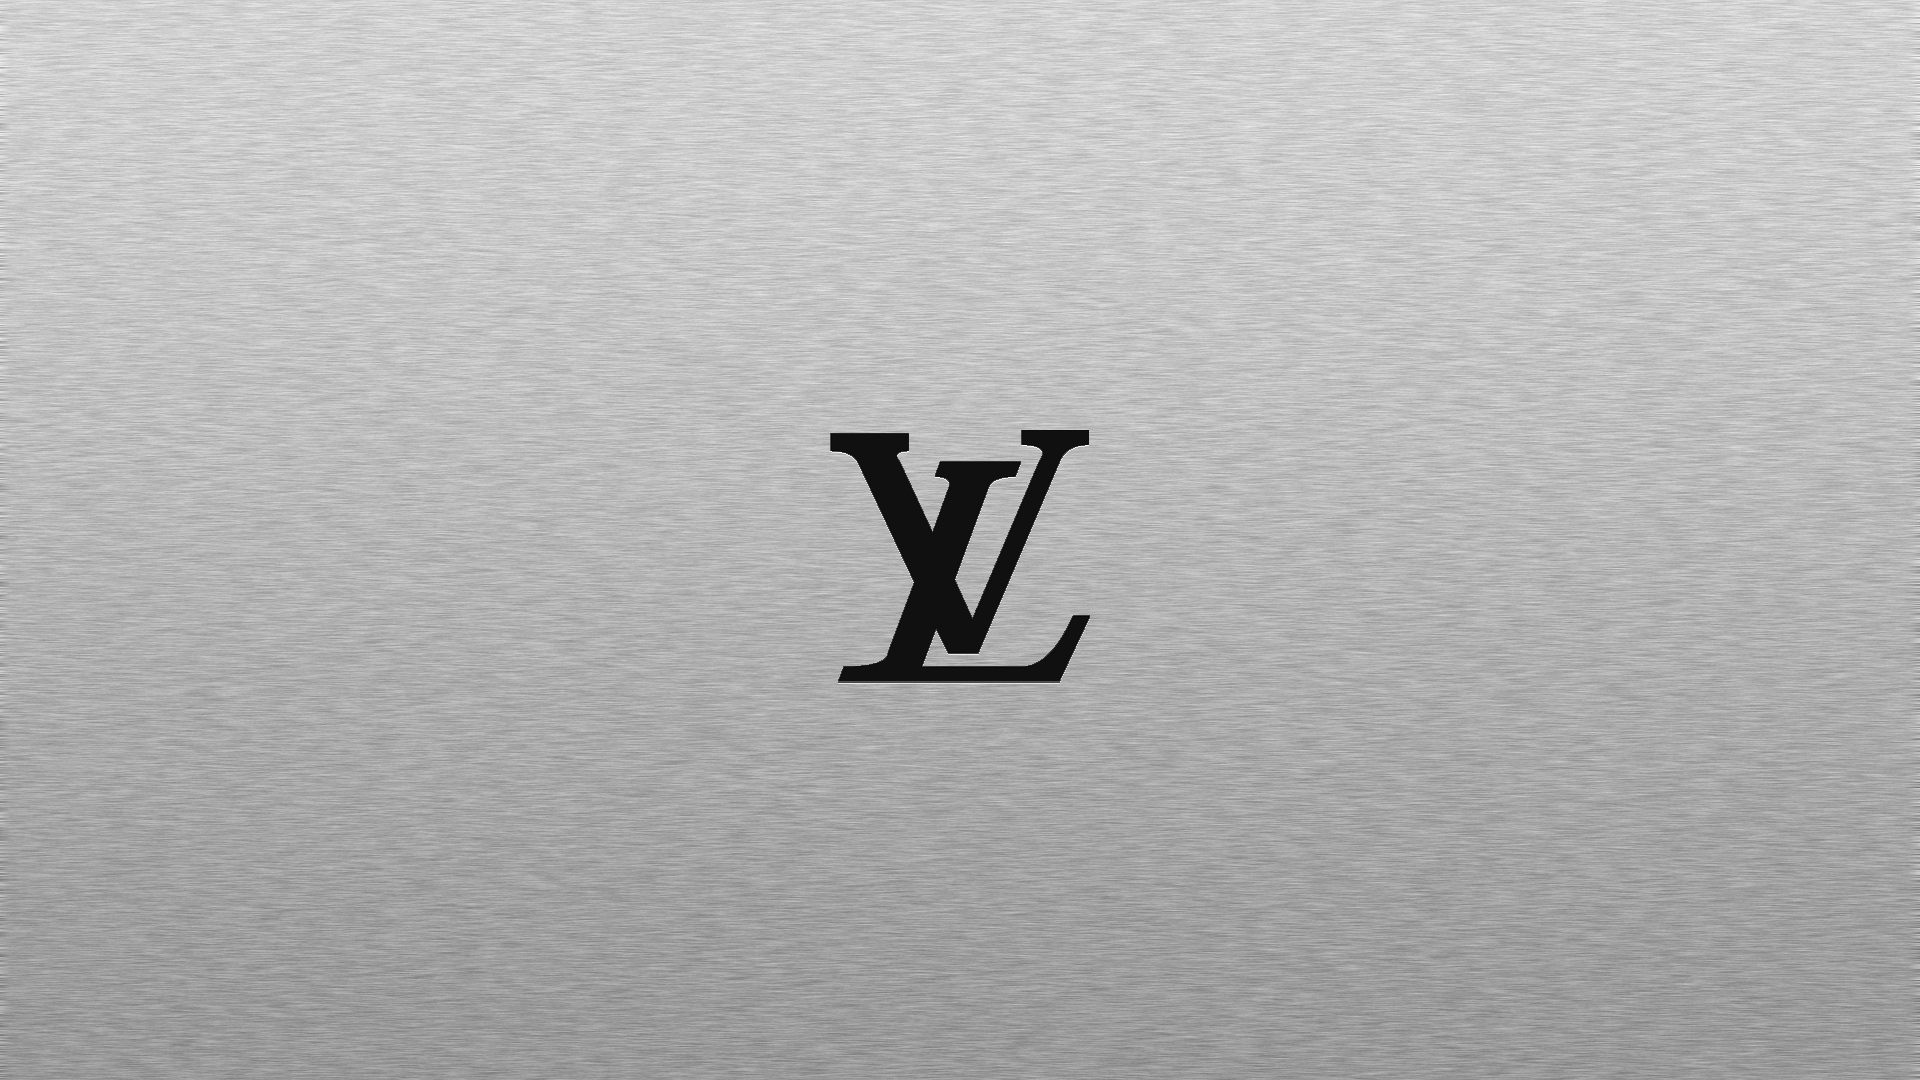 Download wallpaper 1920x1080 louis vuitton brand famous design louis vuitton brand famous design voltagebd Choice Image